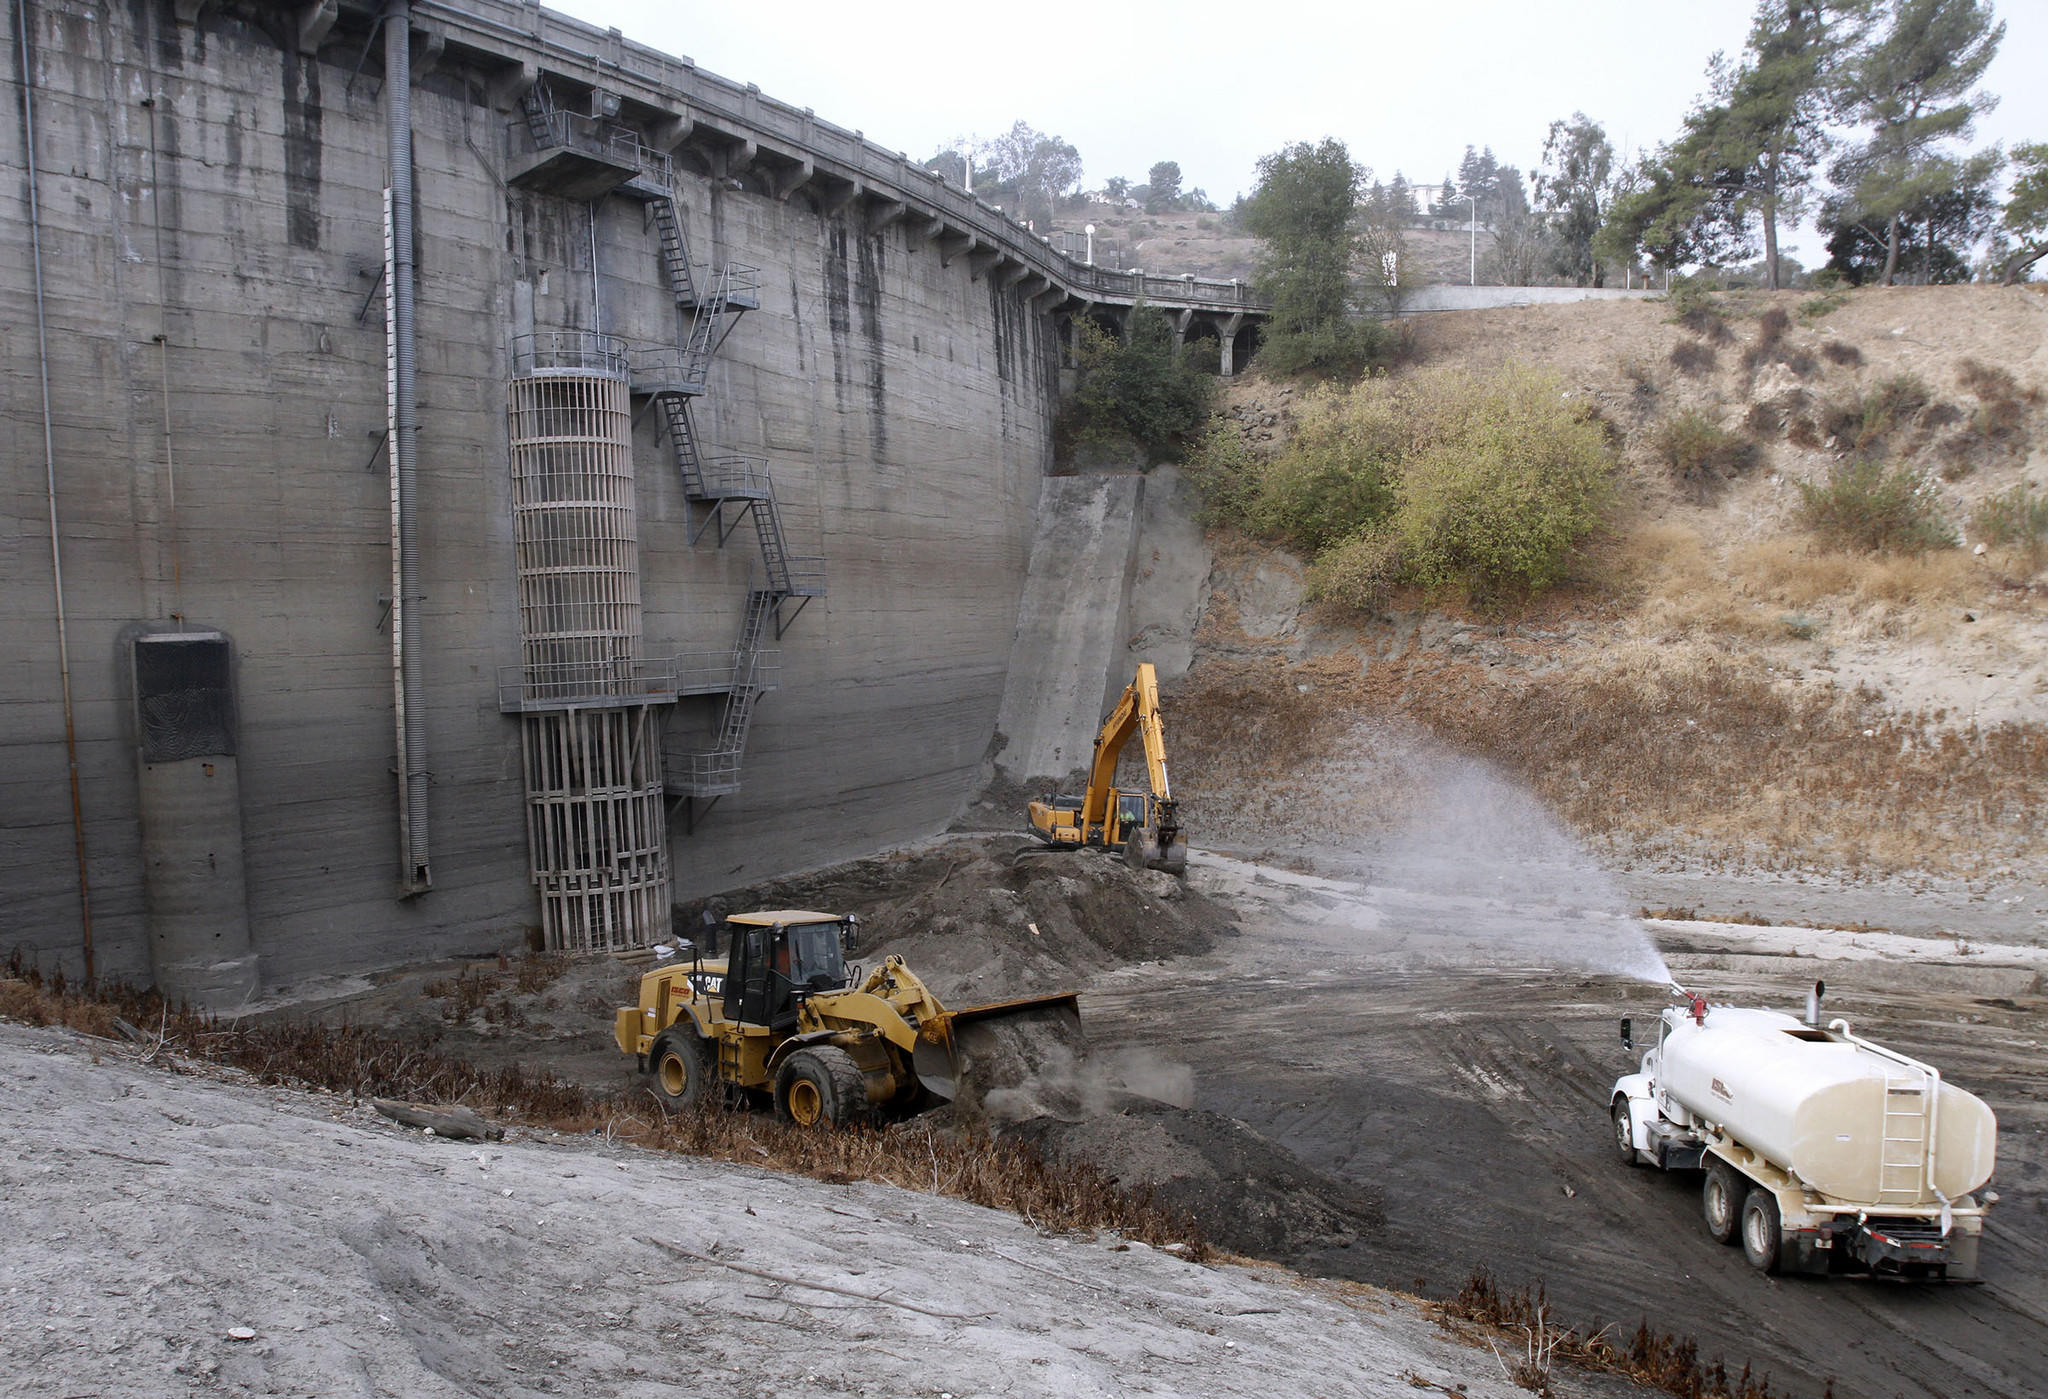 Los Angeles County Department of Public Works crews work to remove dirt from the base of Devil's Gate Dam at Hahamongna Watershed Park in Pasadena on Wednesday, Sept. 18, 2013.